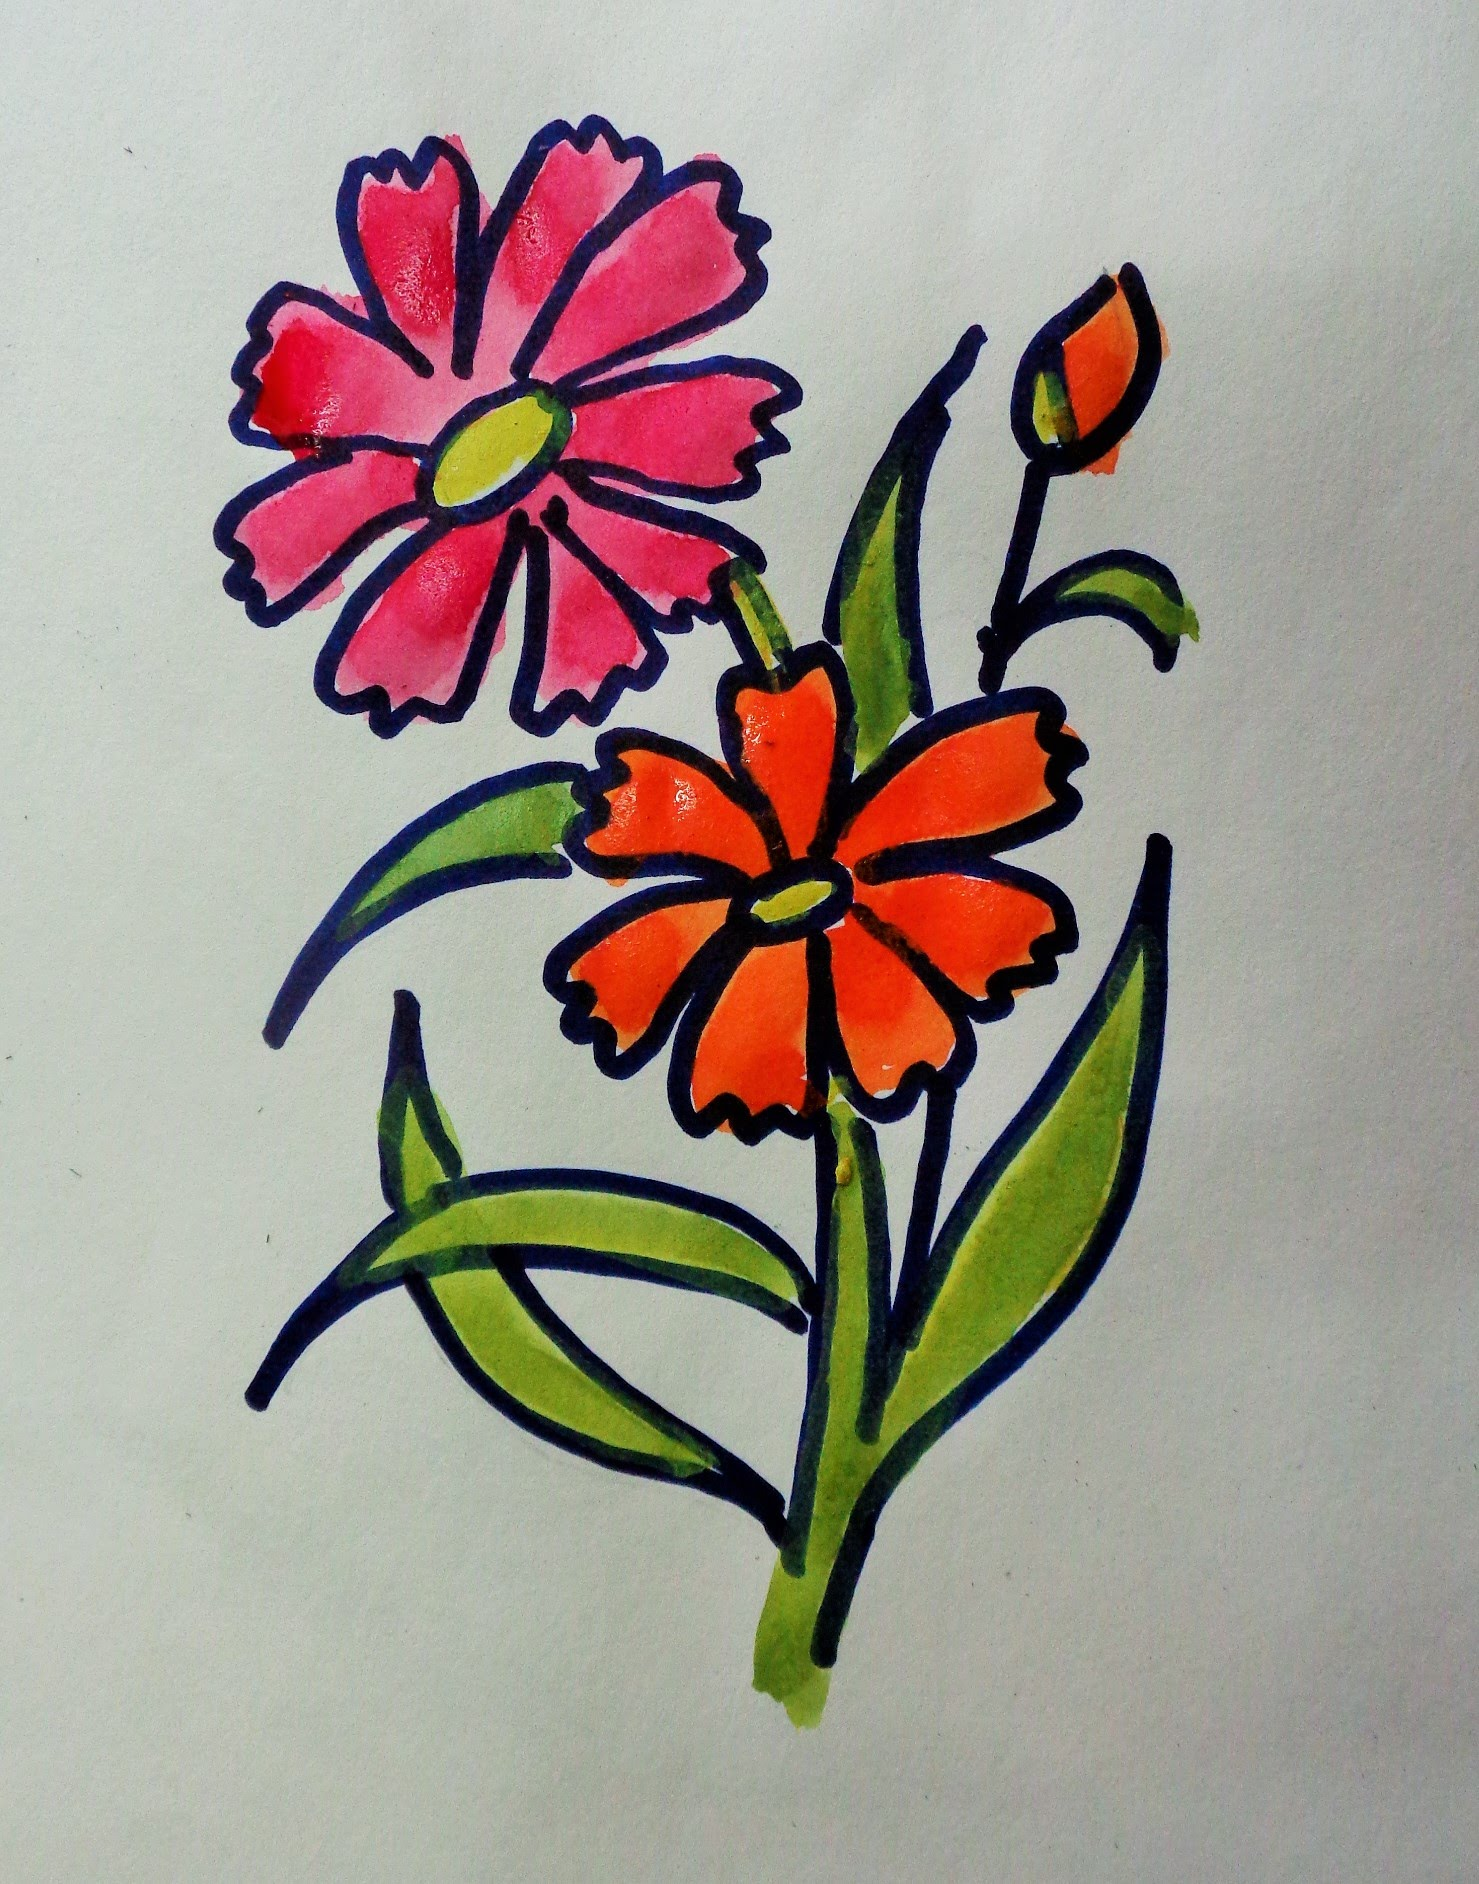 Periwinkle Flower Drawing at GetDrawings.com | Free for personal use ...